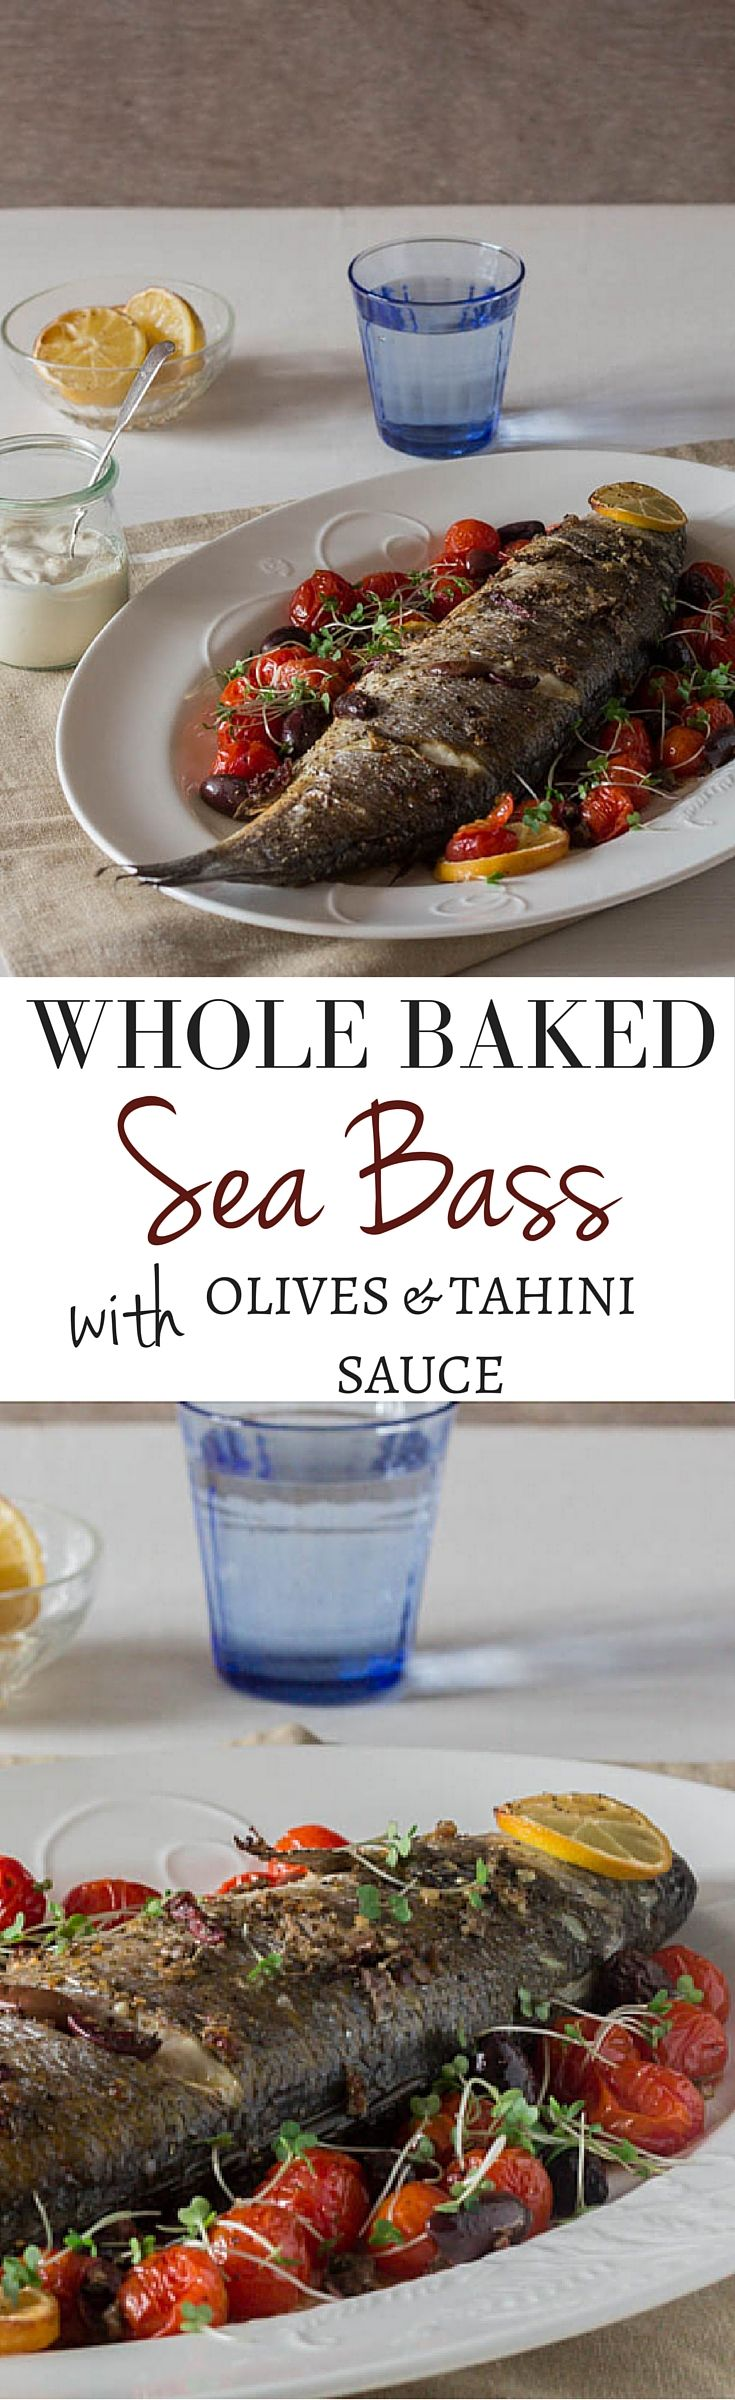 Whole Baked Sea Bass Recipe | Recipes From A Pantry